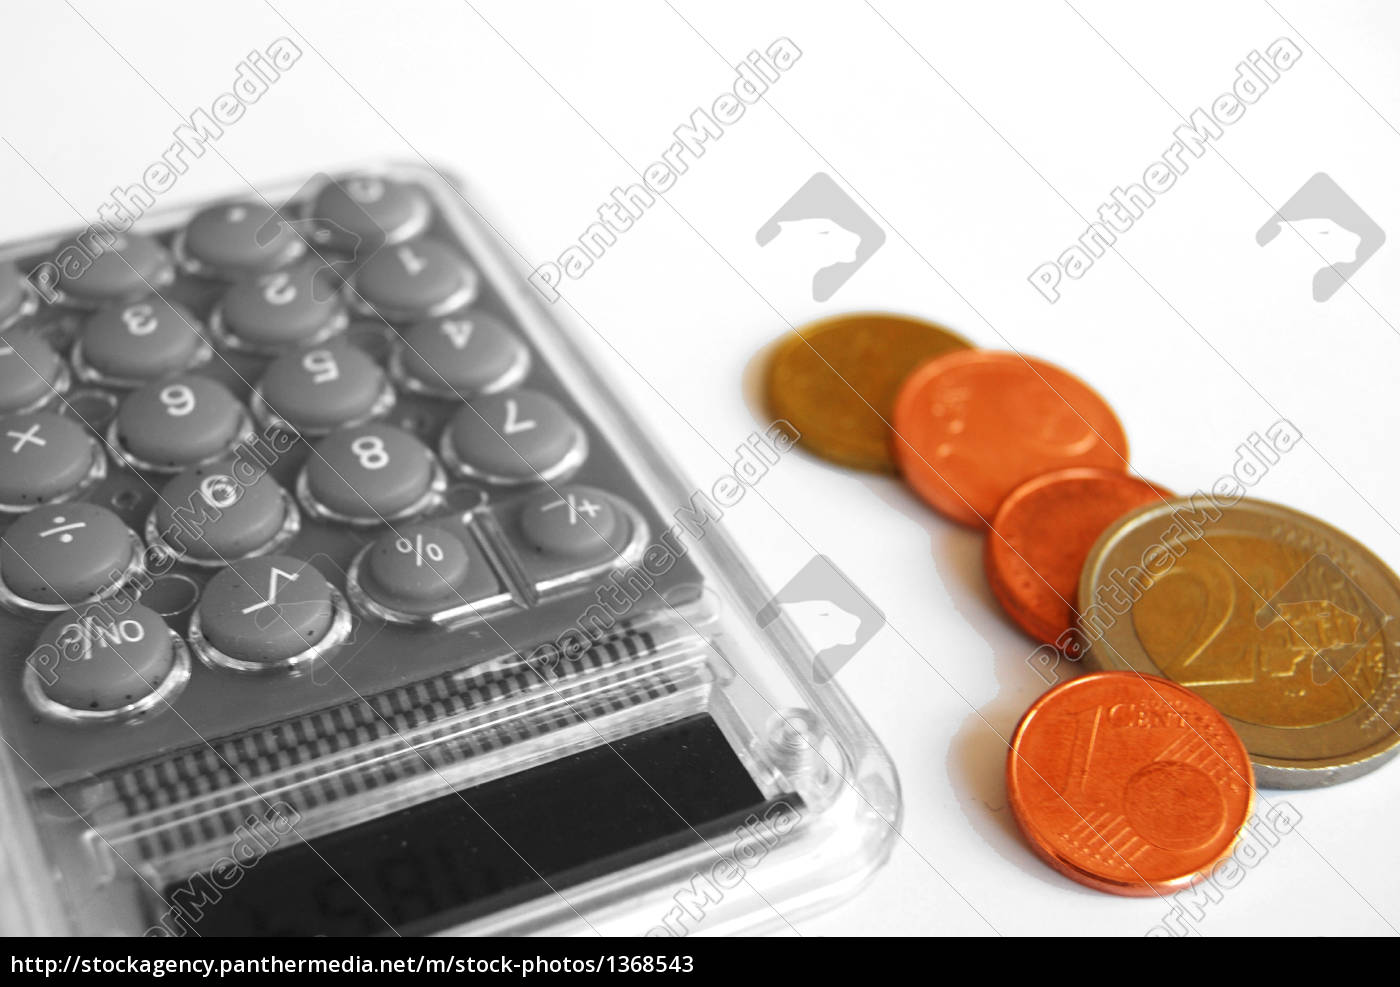 pocket, calculator, and, coins - 1368543